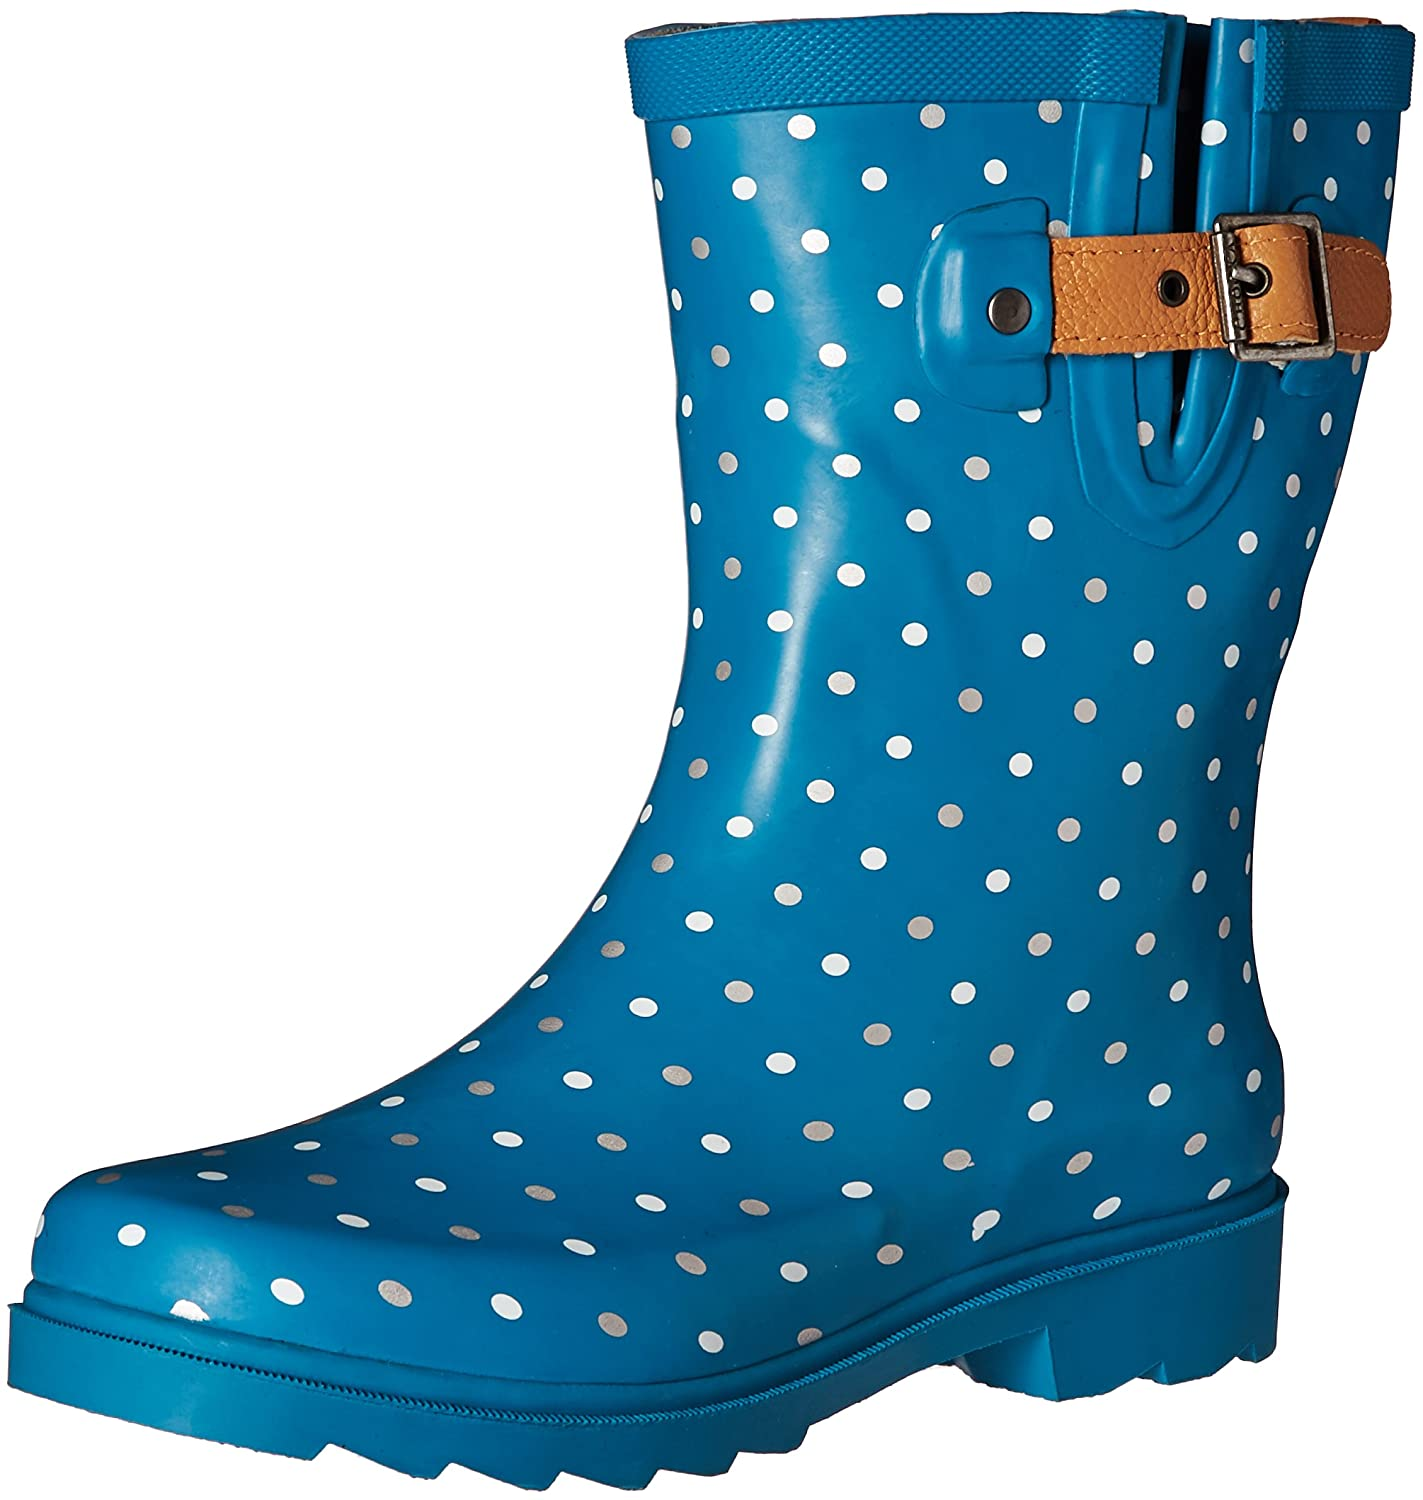 Chooka Women's Classic Dot Mid Calf Rain Boot - Polka Dots